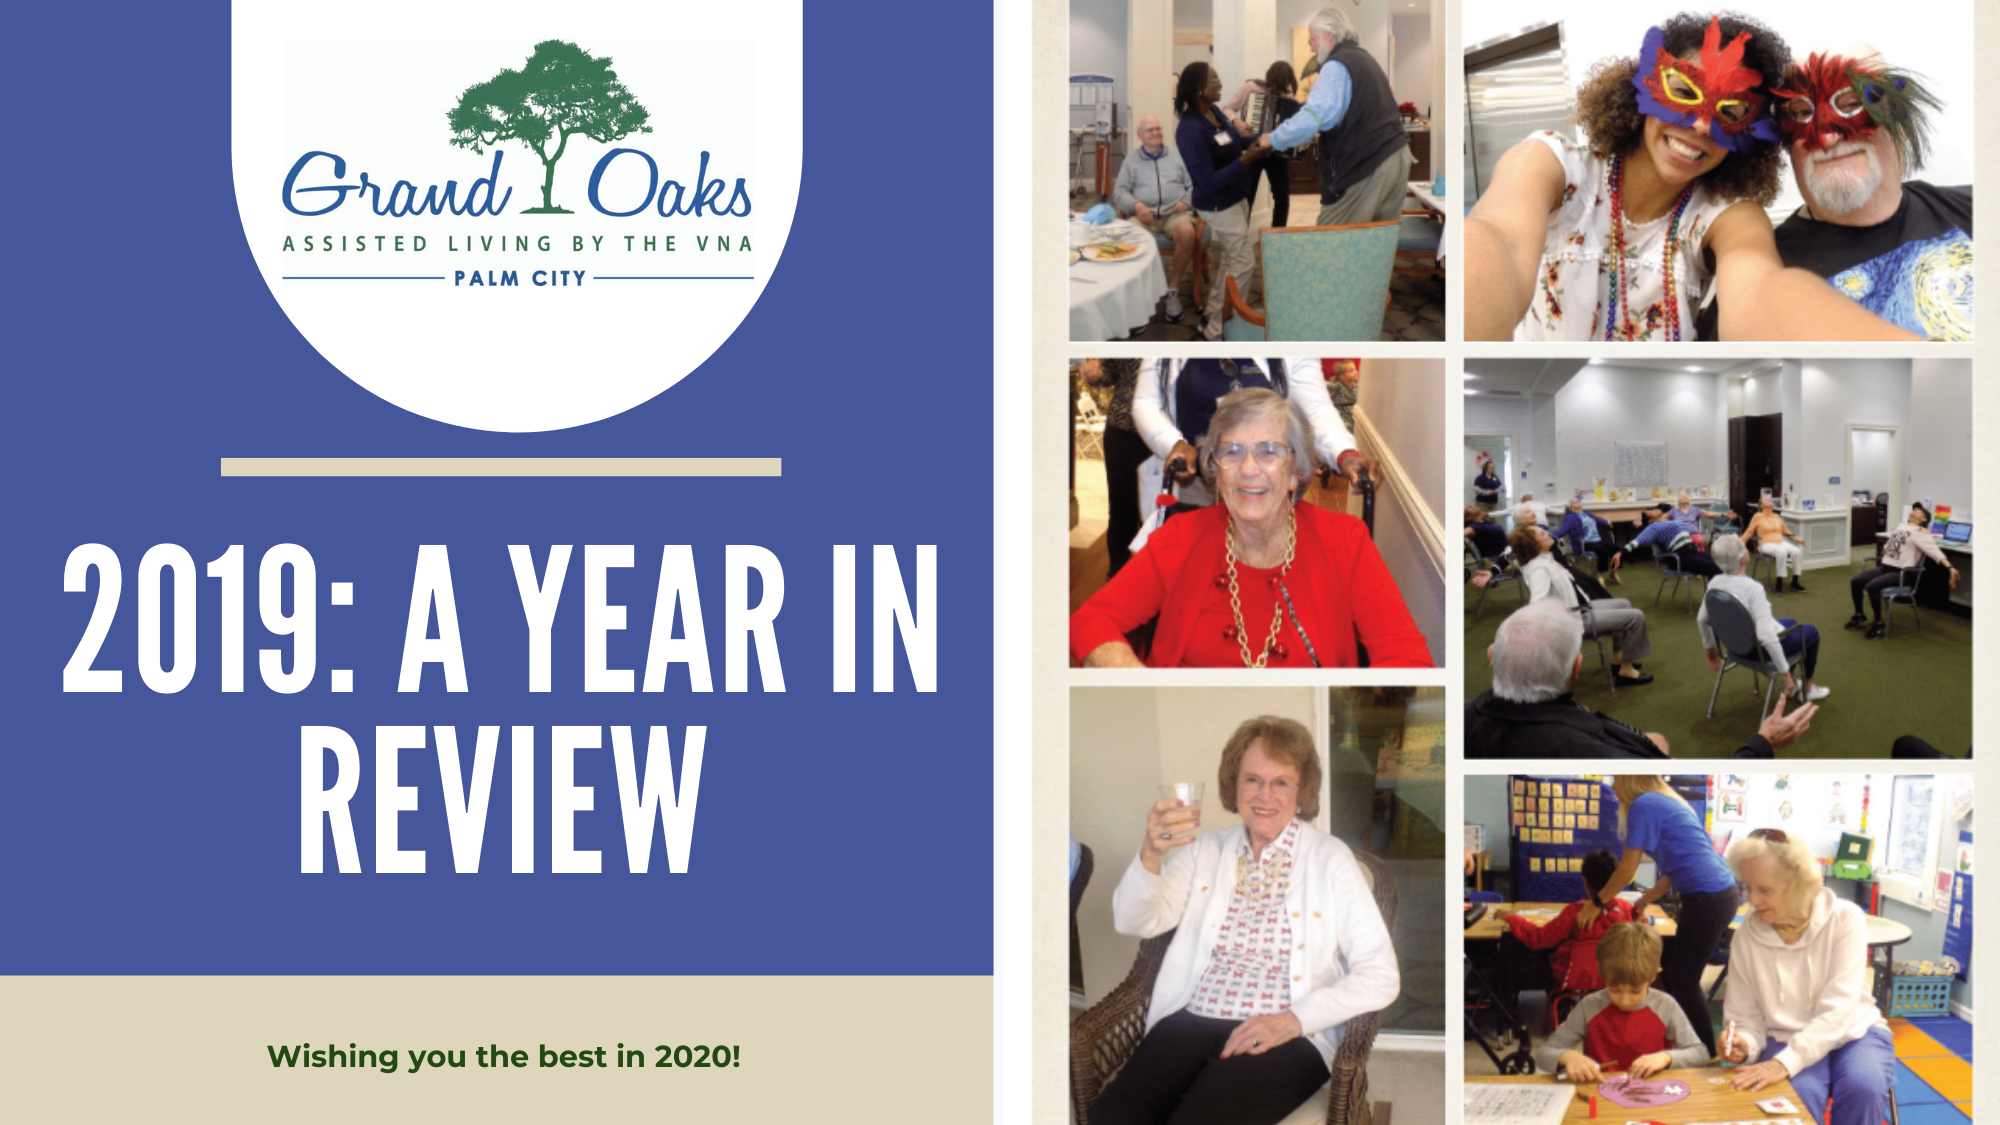 Grand Oaks of Palm City's Year in Review